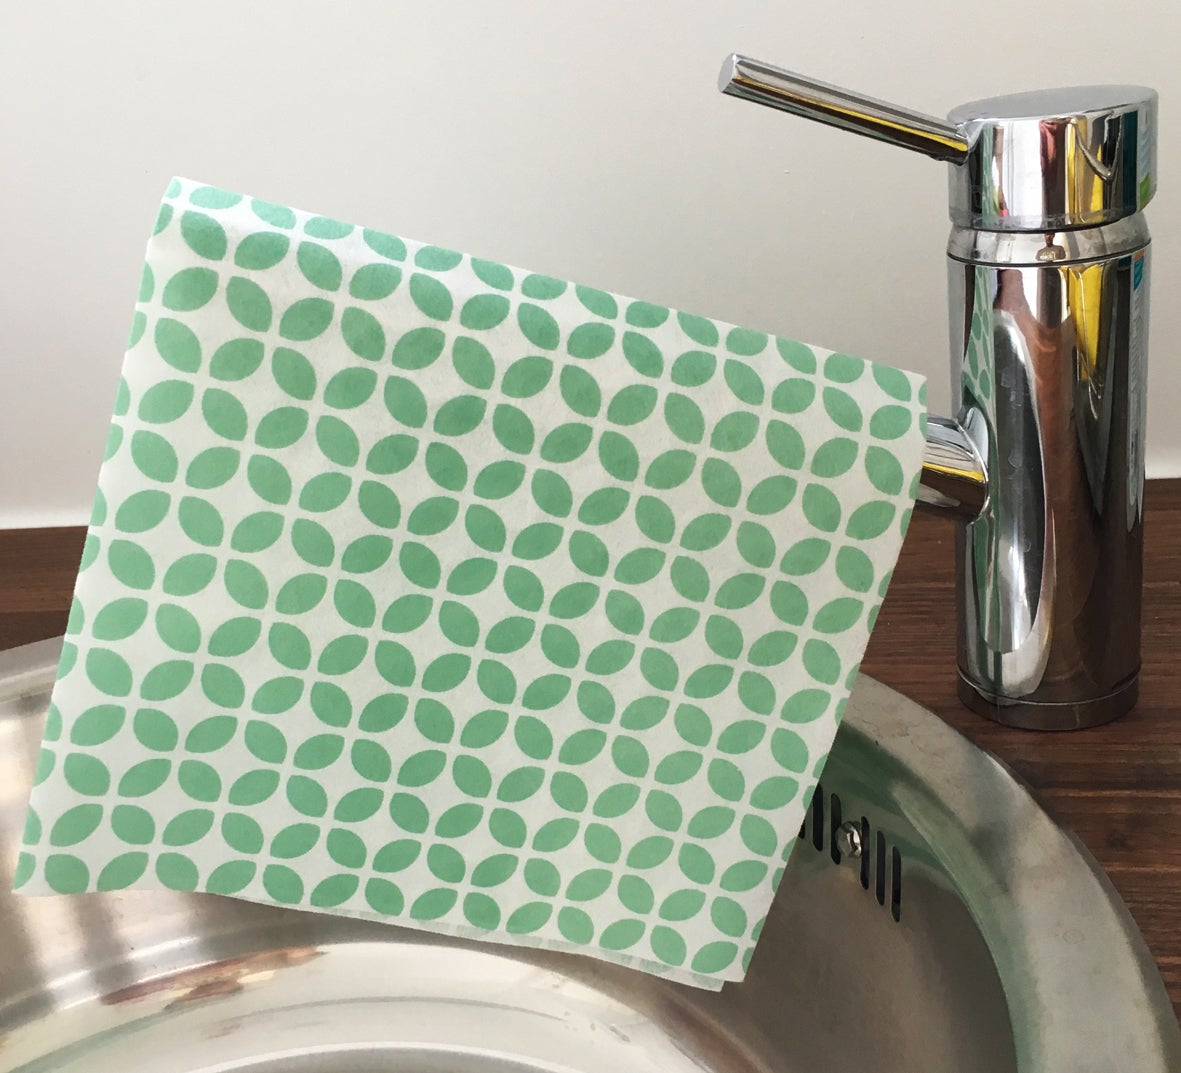 Image of Sustainable Green-Leaf Ultra Absorbent Cloths - 24 cloths